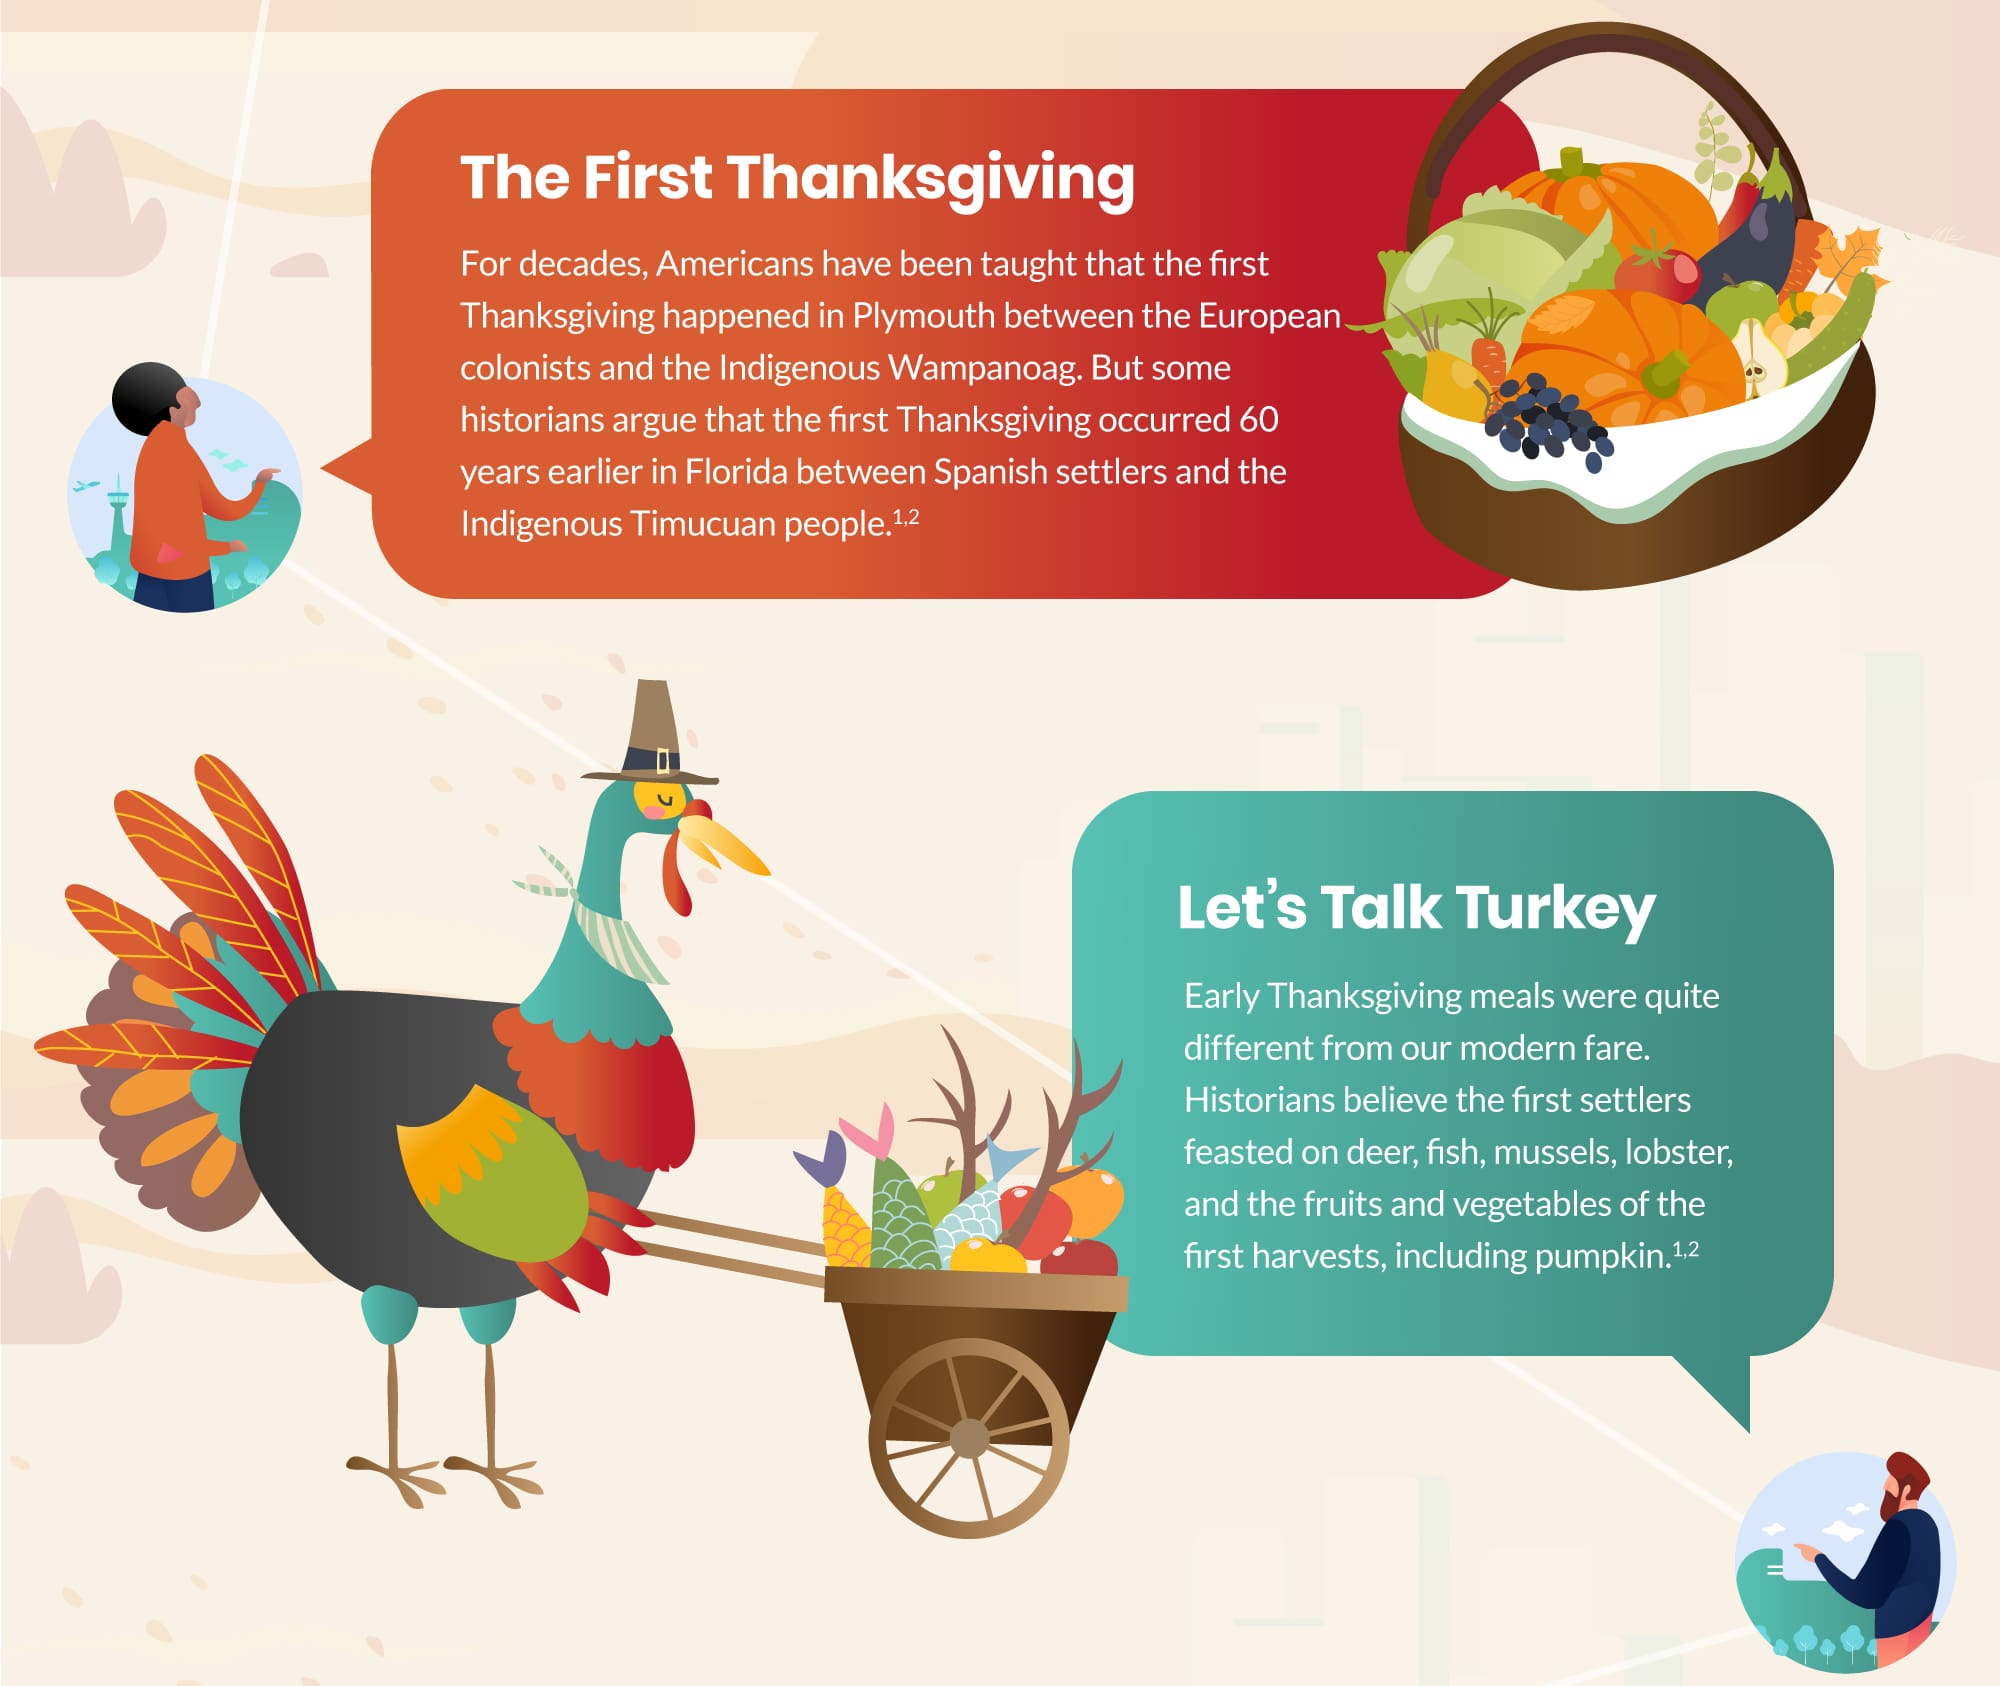 The First Thanksgiving. For decades, Americans have been taught that the first thanksgiving happened in Plymouth between the European colonists and the Indigenous Wampanoag. But some historians argue that the first Thanksgiving occurred 60 years earlier in Florida between Spanish settlers and the Indigenous Timucuan people (1,2). Let's Talk Turkey. Early Thanksgiving meals were quite different from our modern fare. Historians believe the first settlers feasted on deer, fish, mussels, lobster, and the fruits and vegetables of the first harvests, including pumpkin (1,2).